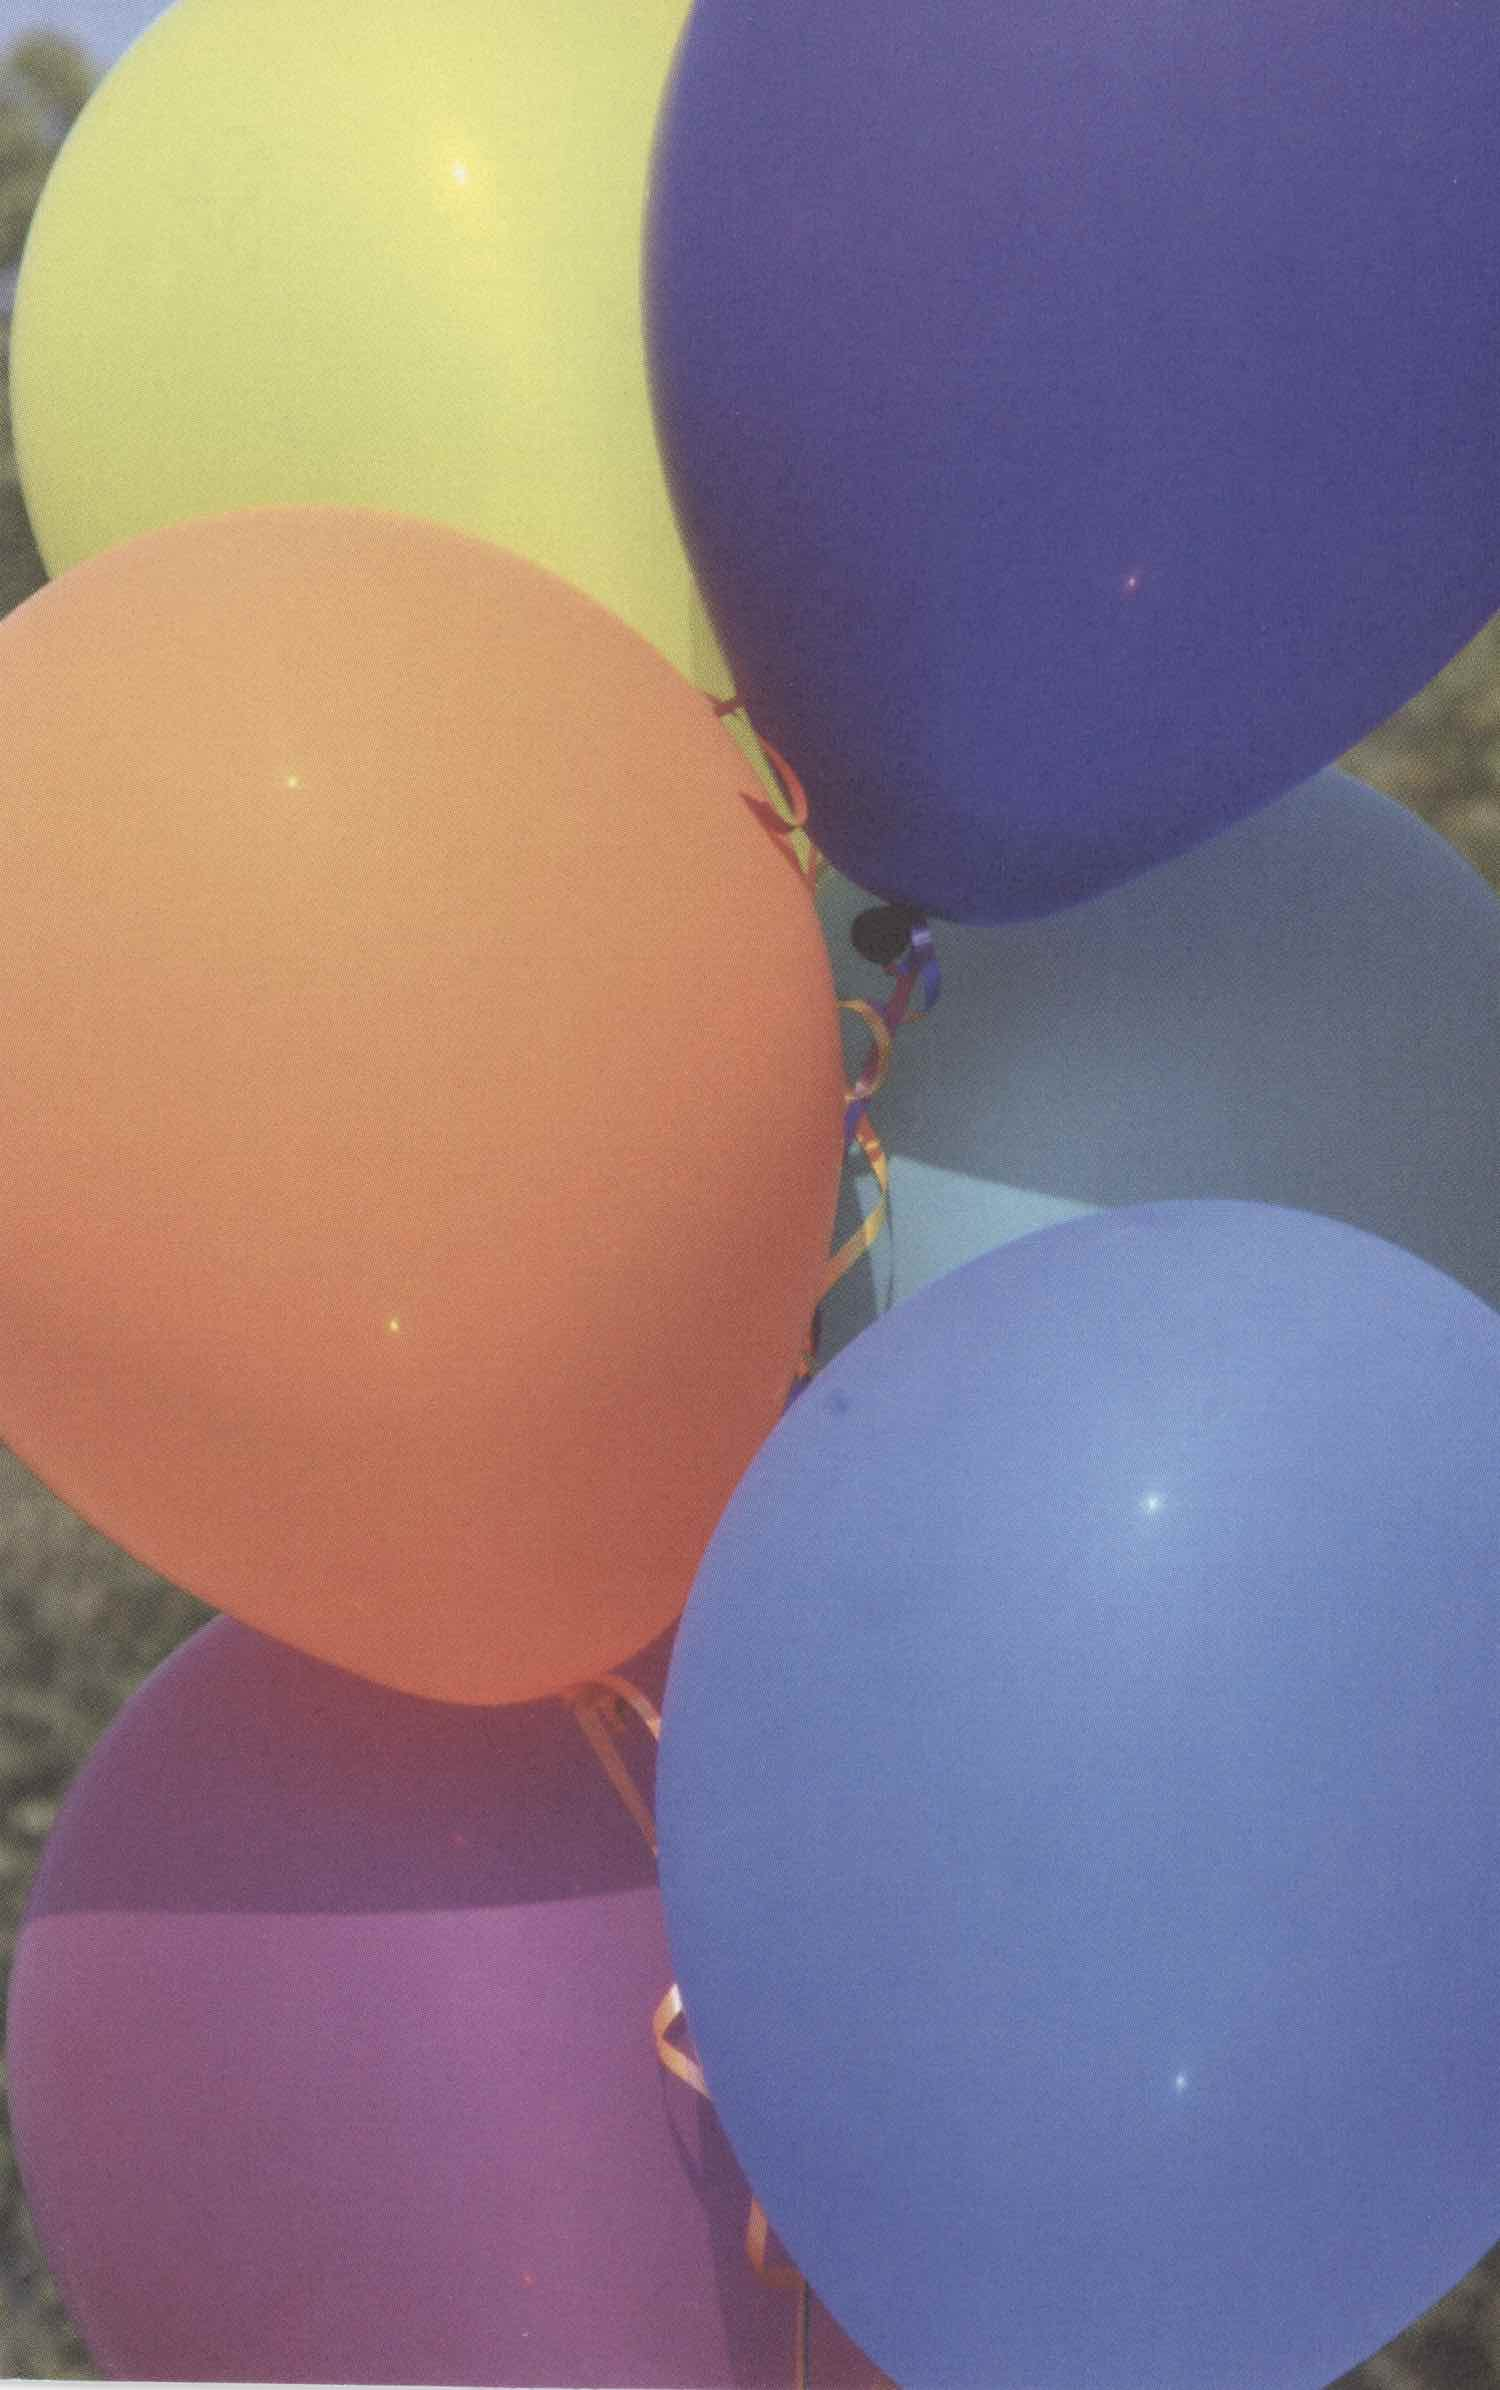 Scanned photo of birthday balloons. The photo is zoomed in with 95% of the photo being balloons. It's positioned vertically. There are 6 balloons in the photo. Upper-left: Yellow, upper-right: Dark blue/purple, then orange, teal, magenta, and blue. All of the balloons have curly orange ribbons.